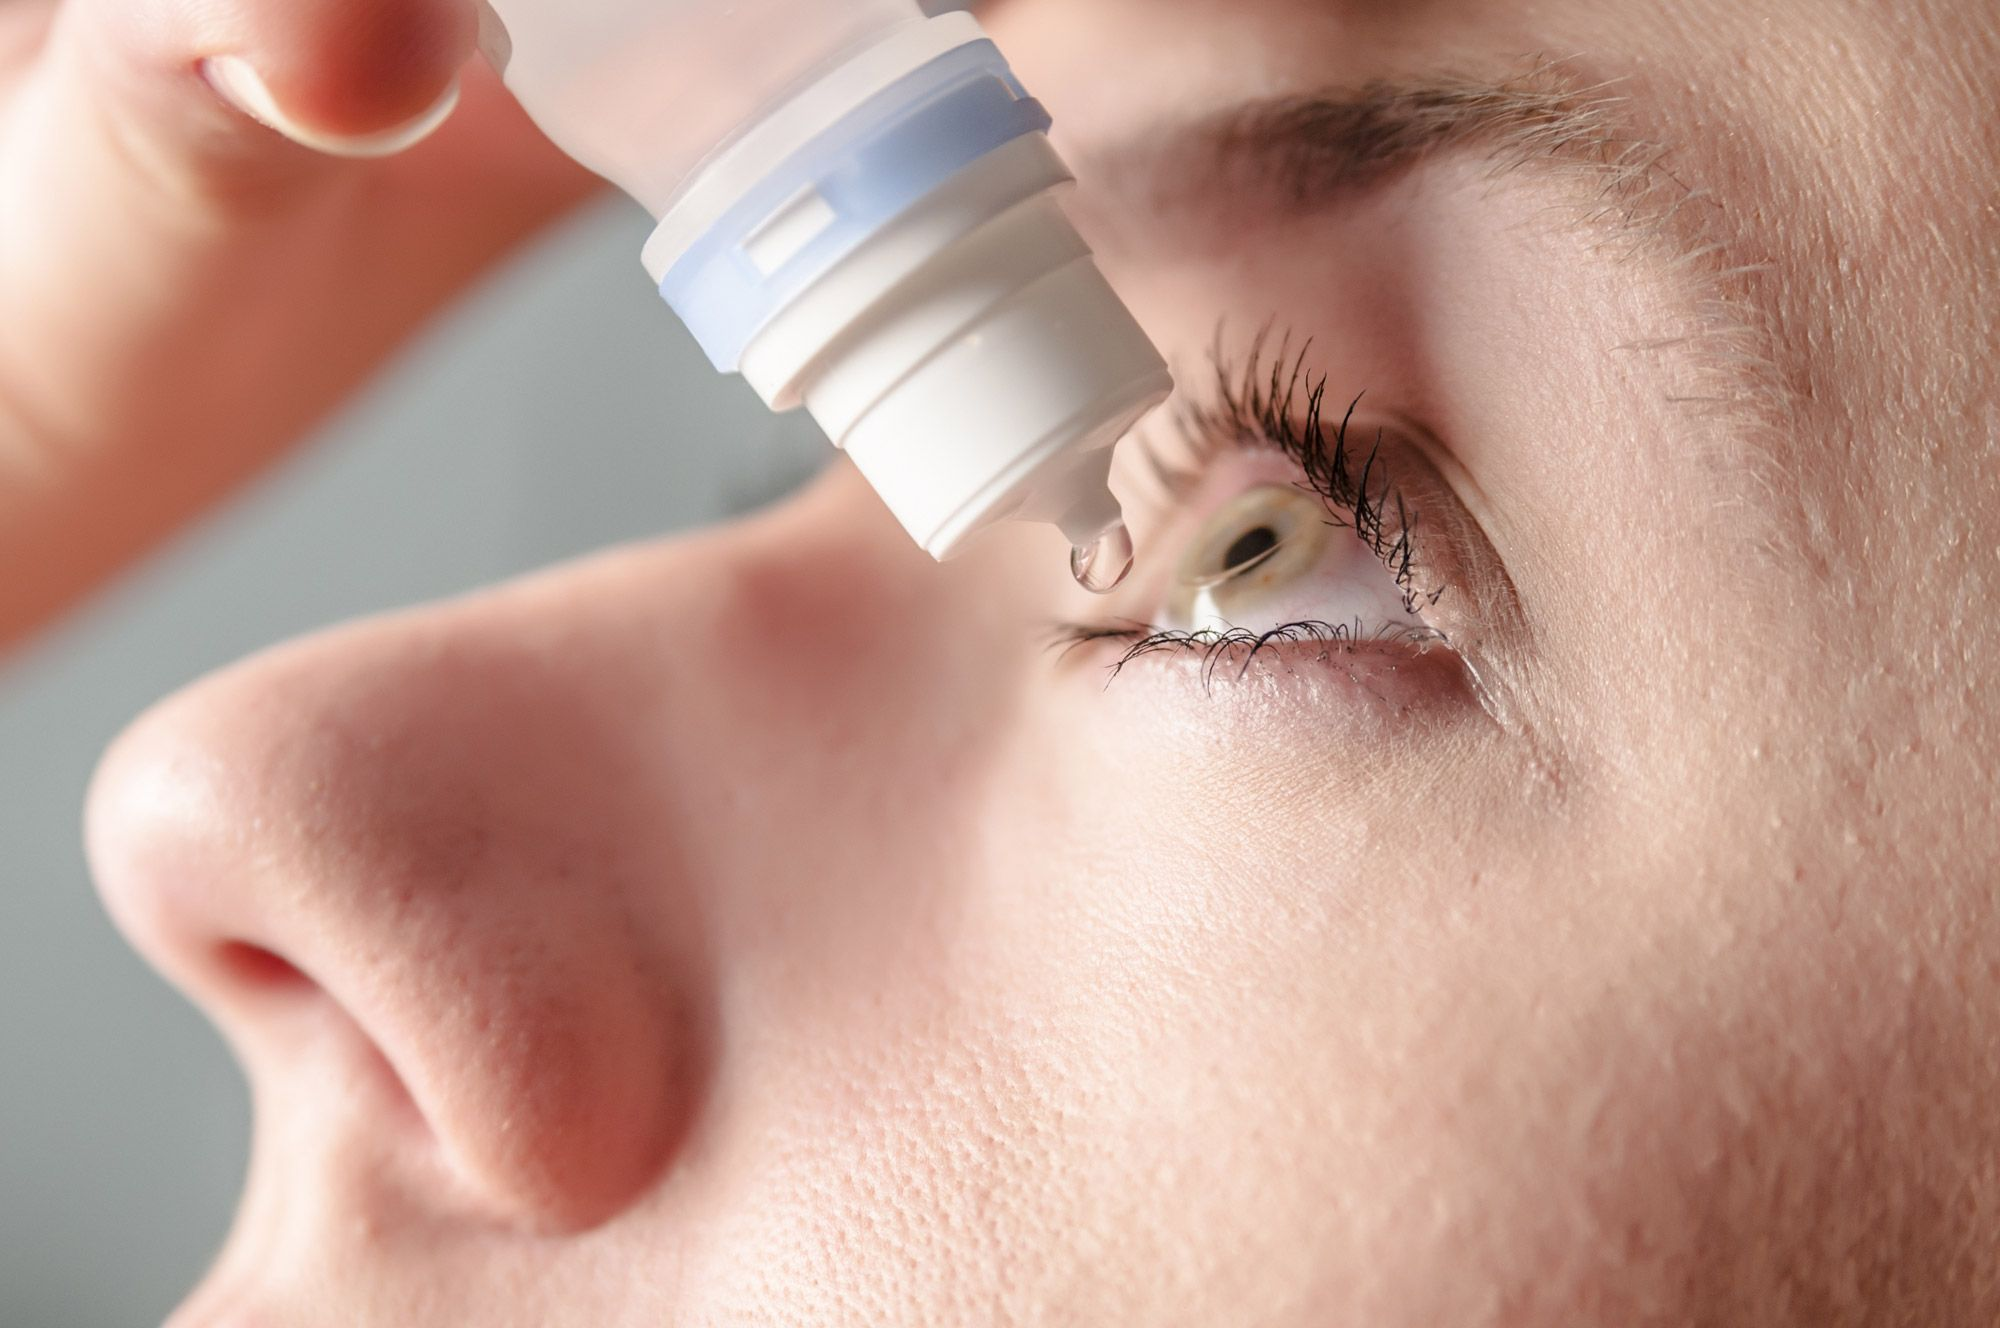 Woman using lubricating eye drops